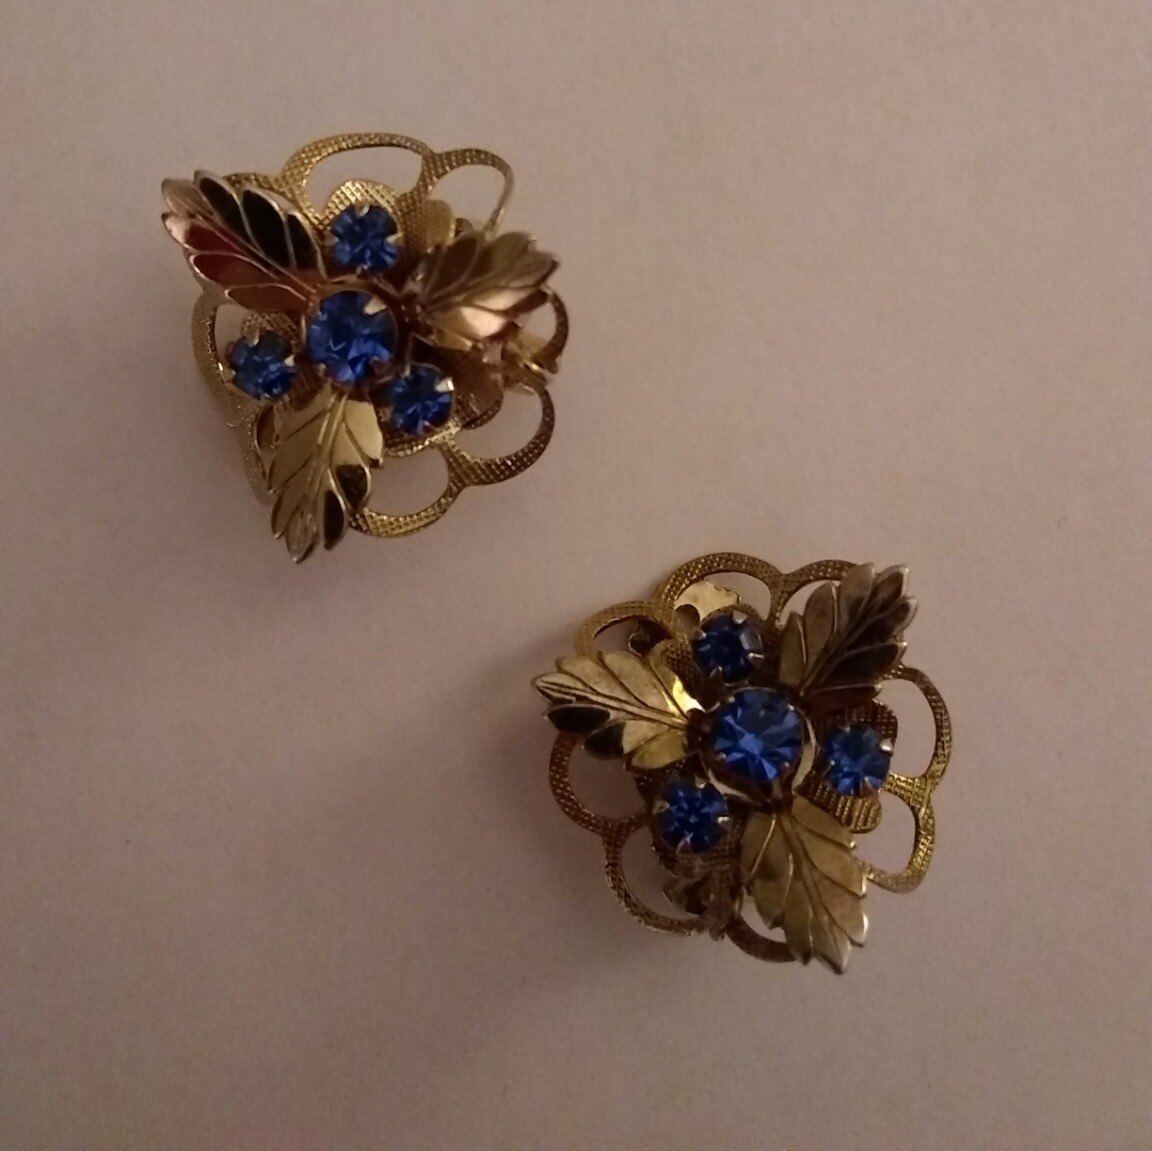 Vintage Fashion Jewelry Clip Earrings with Blue Stones